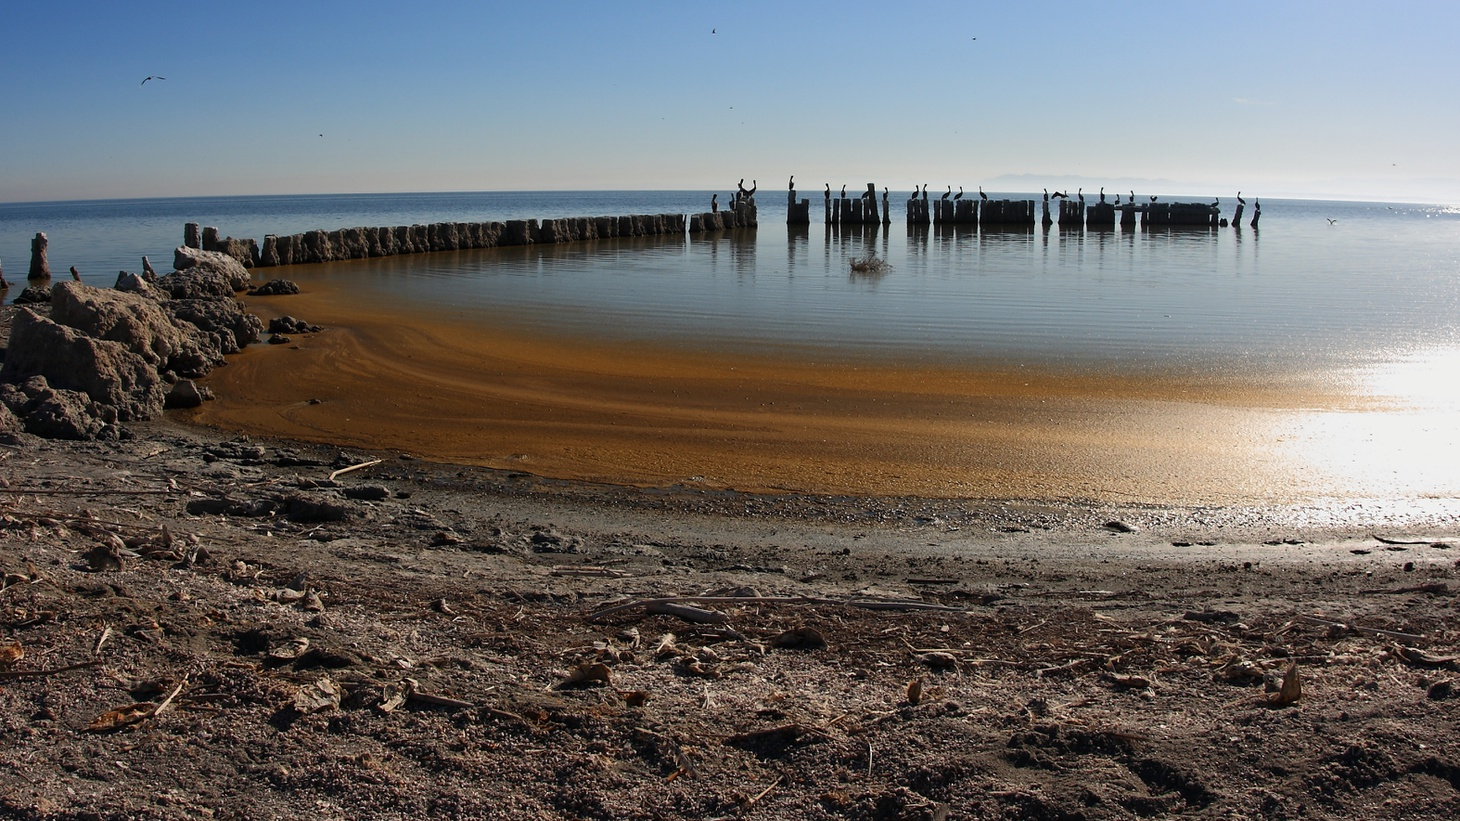 The Salton Sea could help provide a substantial resource of lithium, which is part of batteries for electric cars and cell phones.